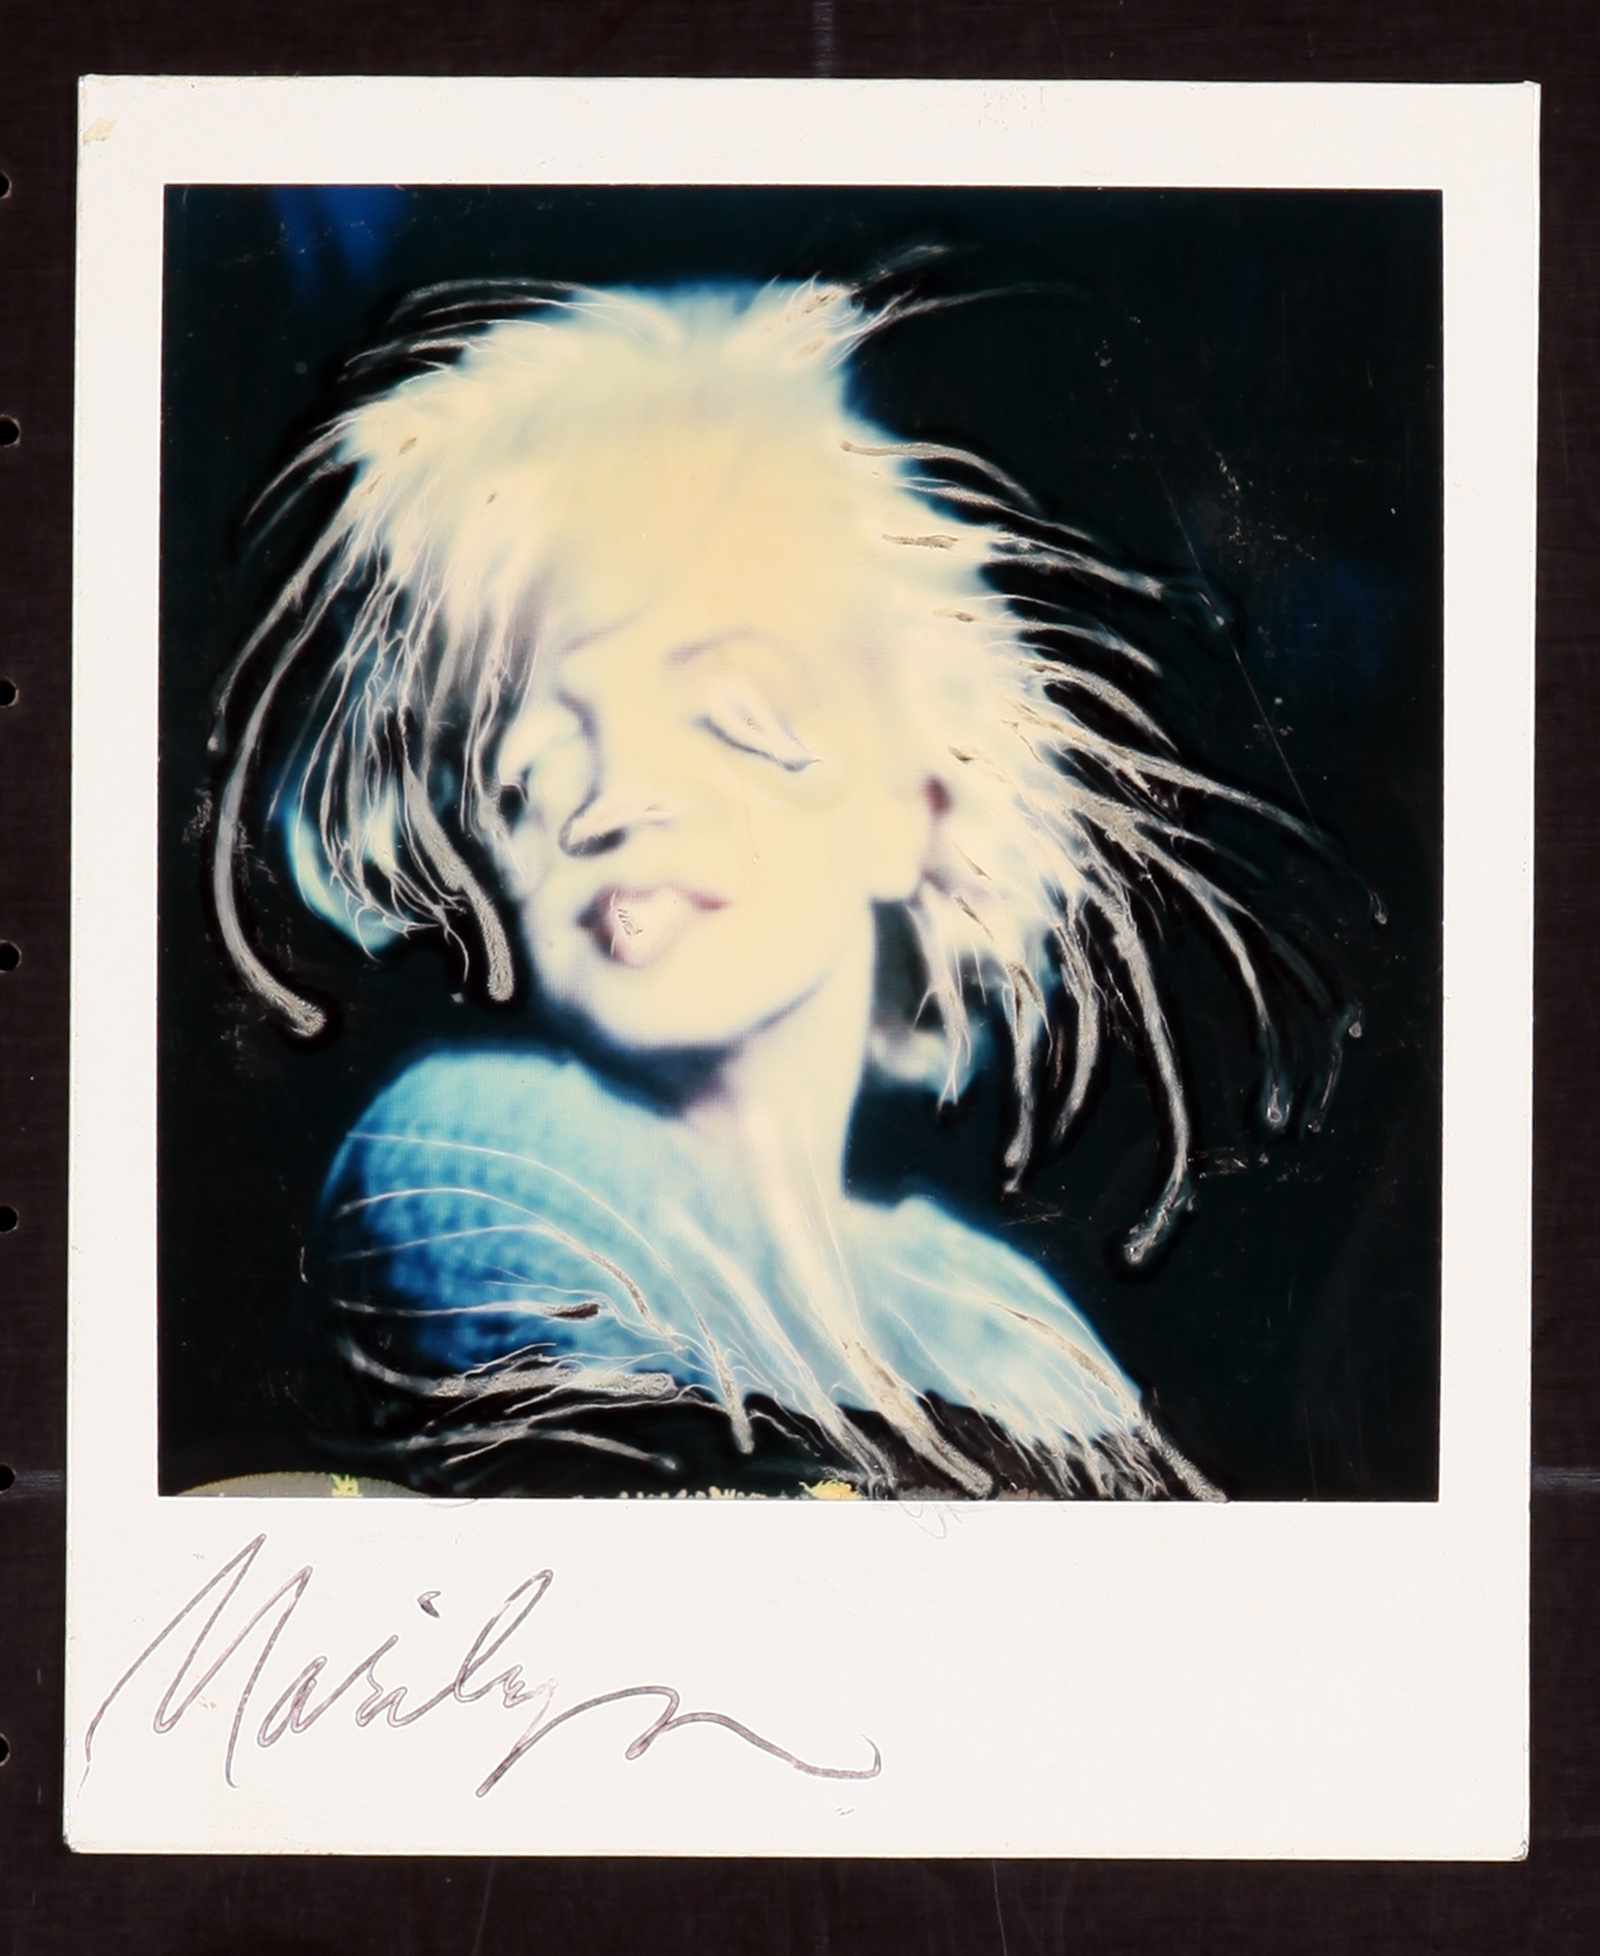 A portrait of Hollywood icon, Marilyn Monroe, using the photographic technique, Paranoids using a polaroid photo by Ralph Steadman